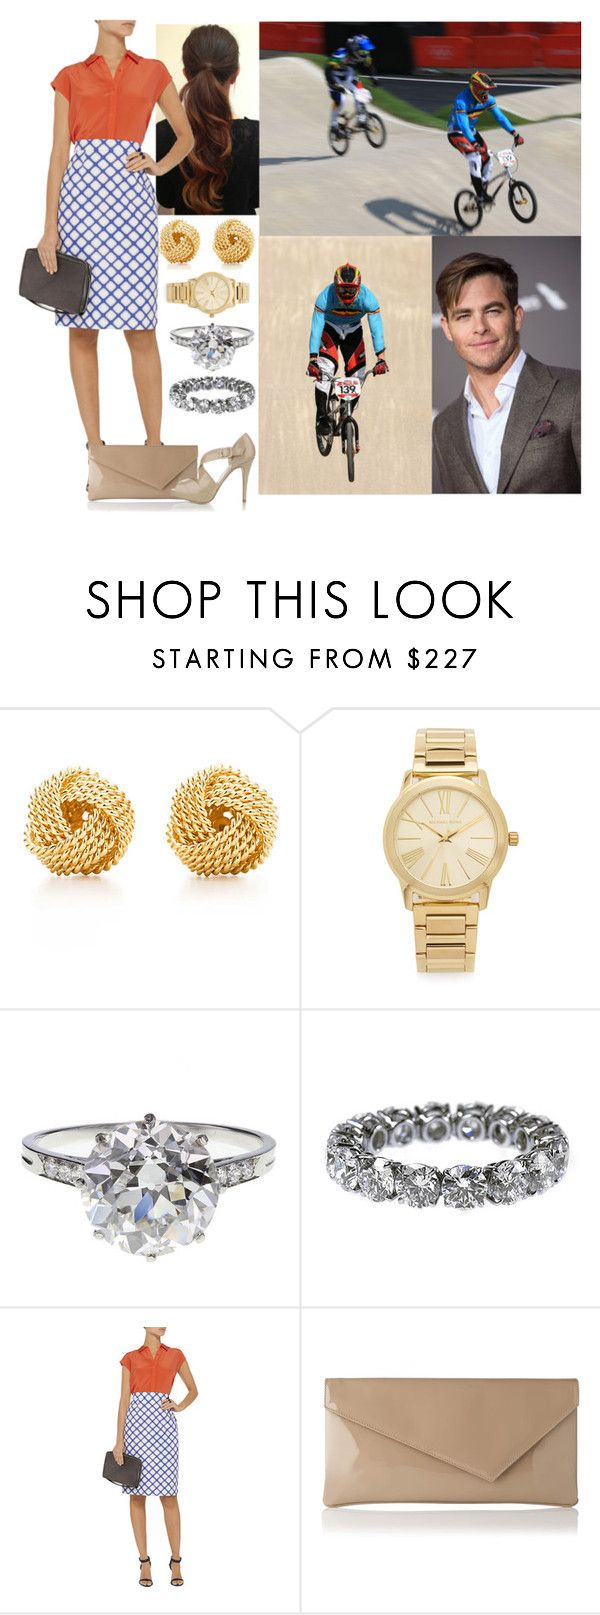 """Supporting Team Belgium on Day 13 of the London Olympics"" by hanaofbelgium ❤ liked on Polyvore featuring Tiffany & Co., Michael Kors, Boucheron, Jonathan Saunders, L.K.Bennett, women's clothing, women, female, woman and misses"